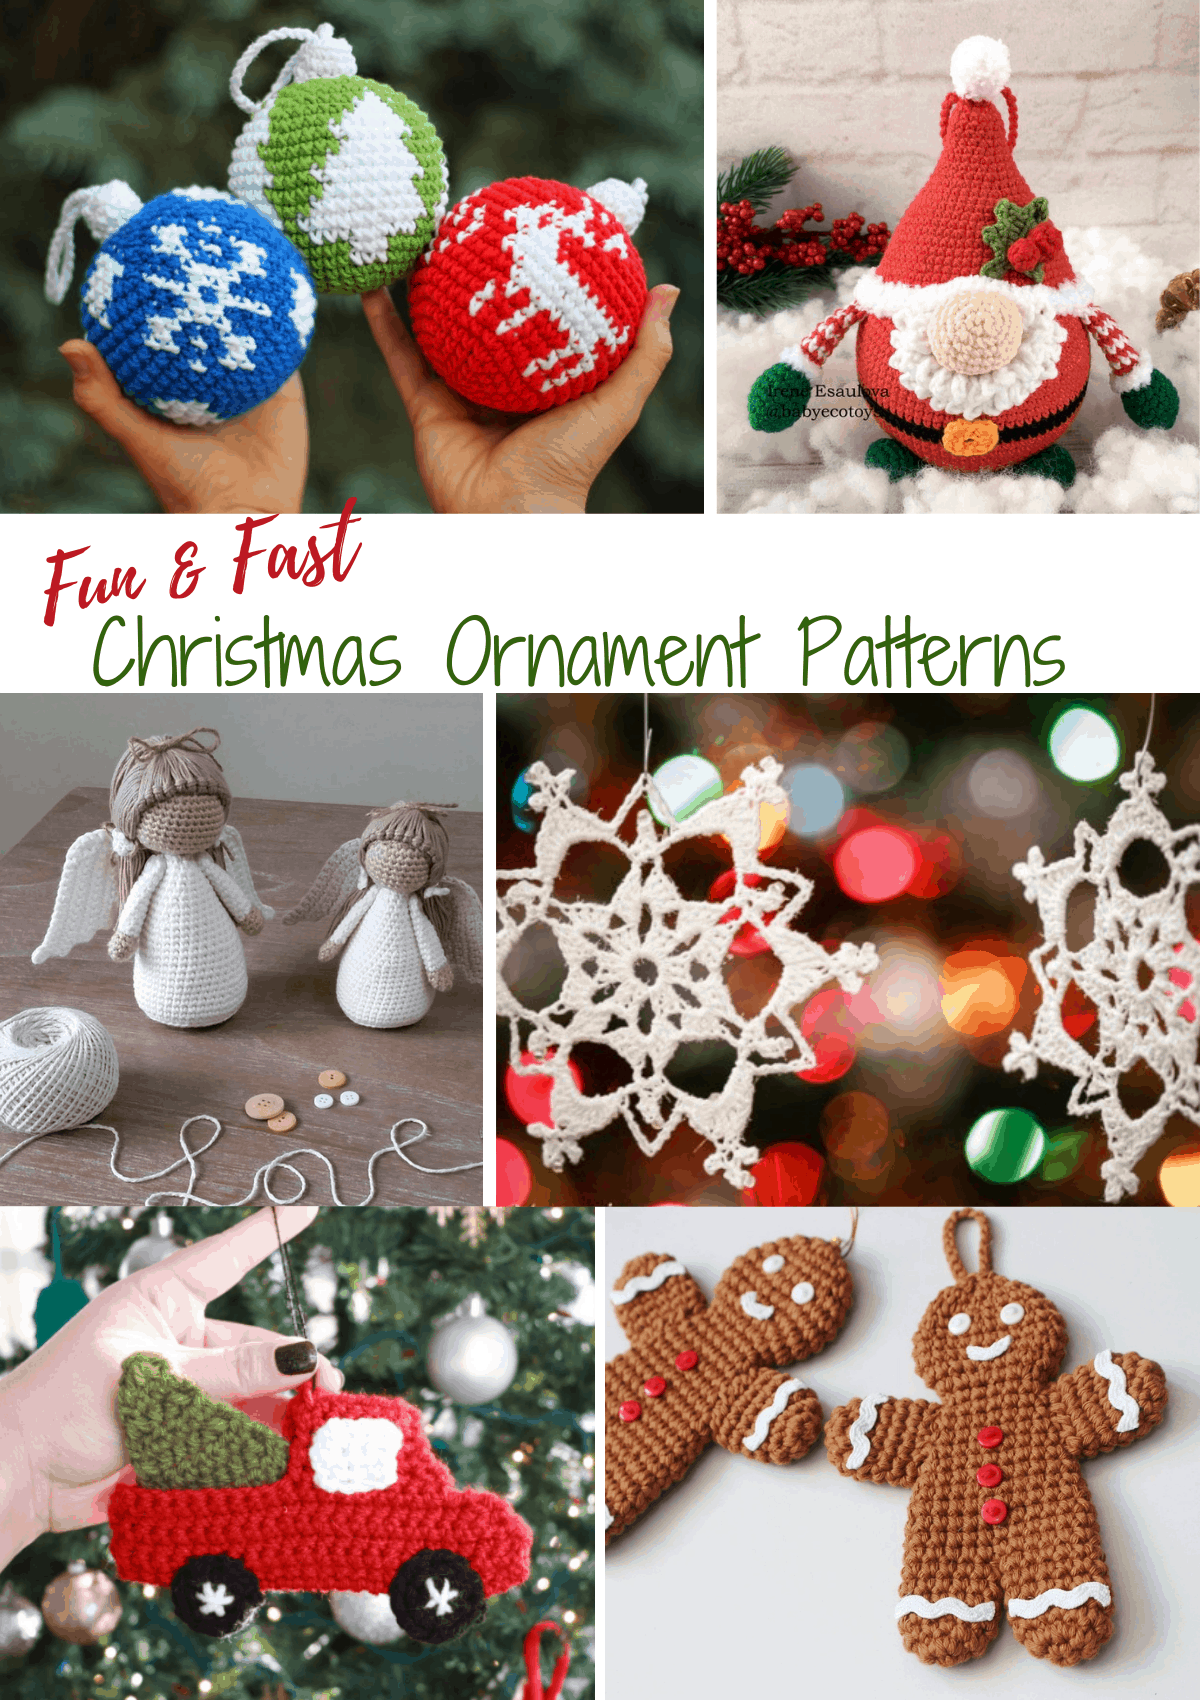 various crochet Christmas ornaments including Santa, angels, snowflakes, gingerbread men and red truck with tree